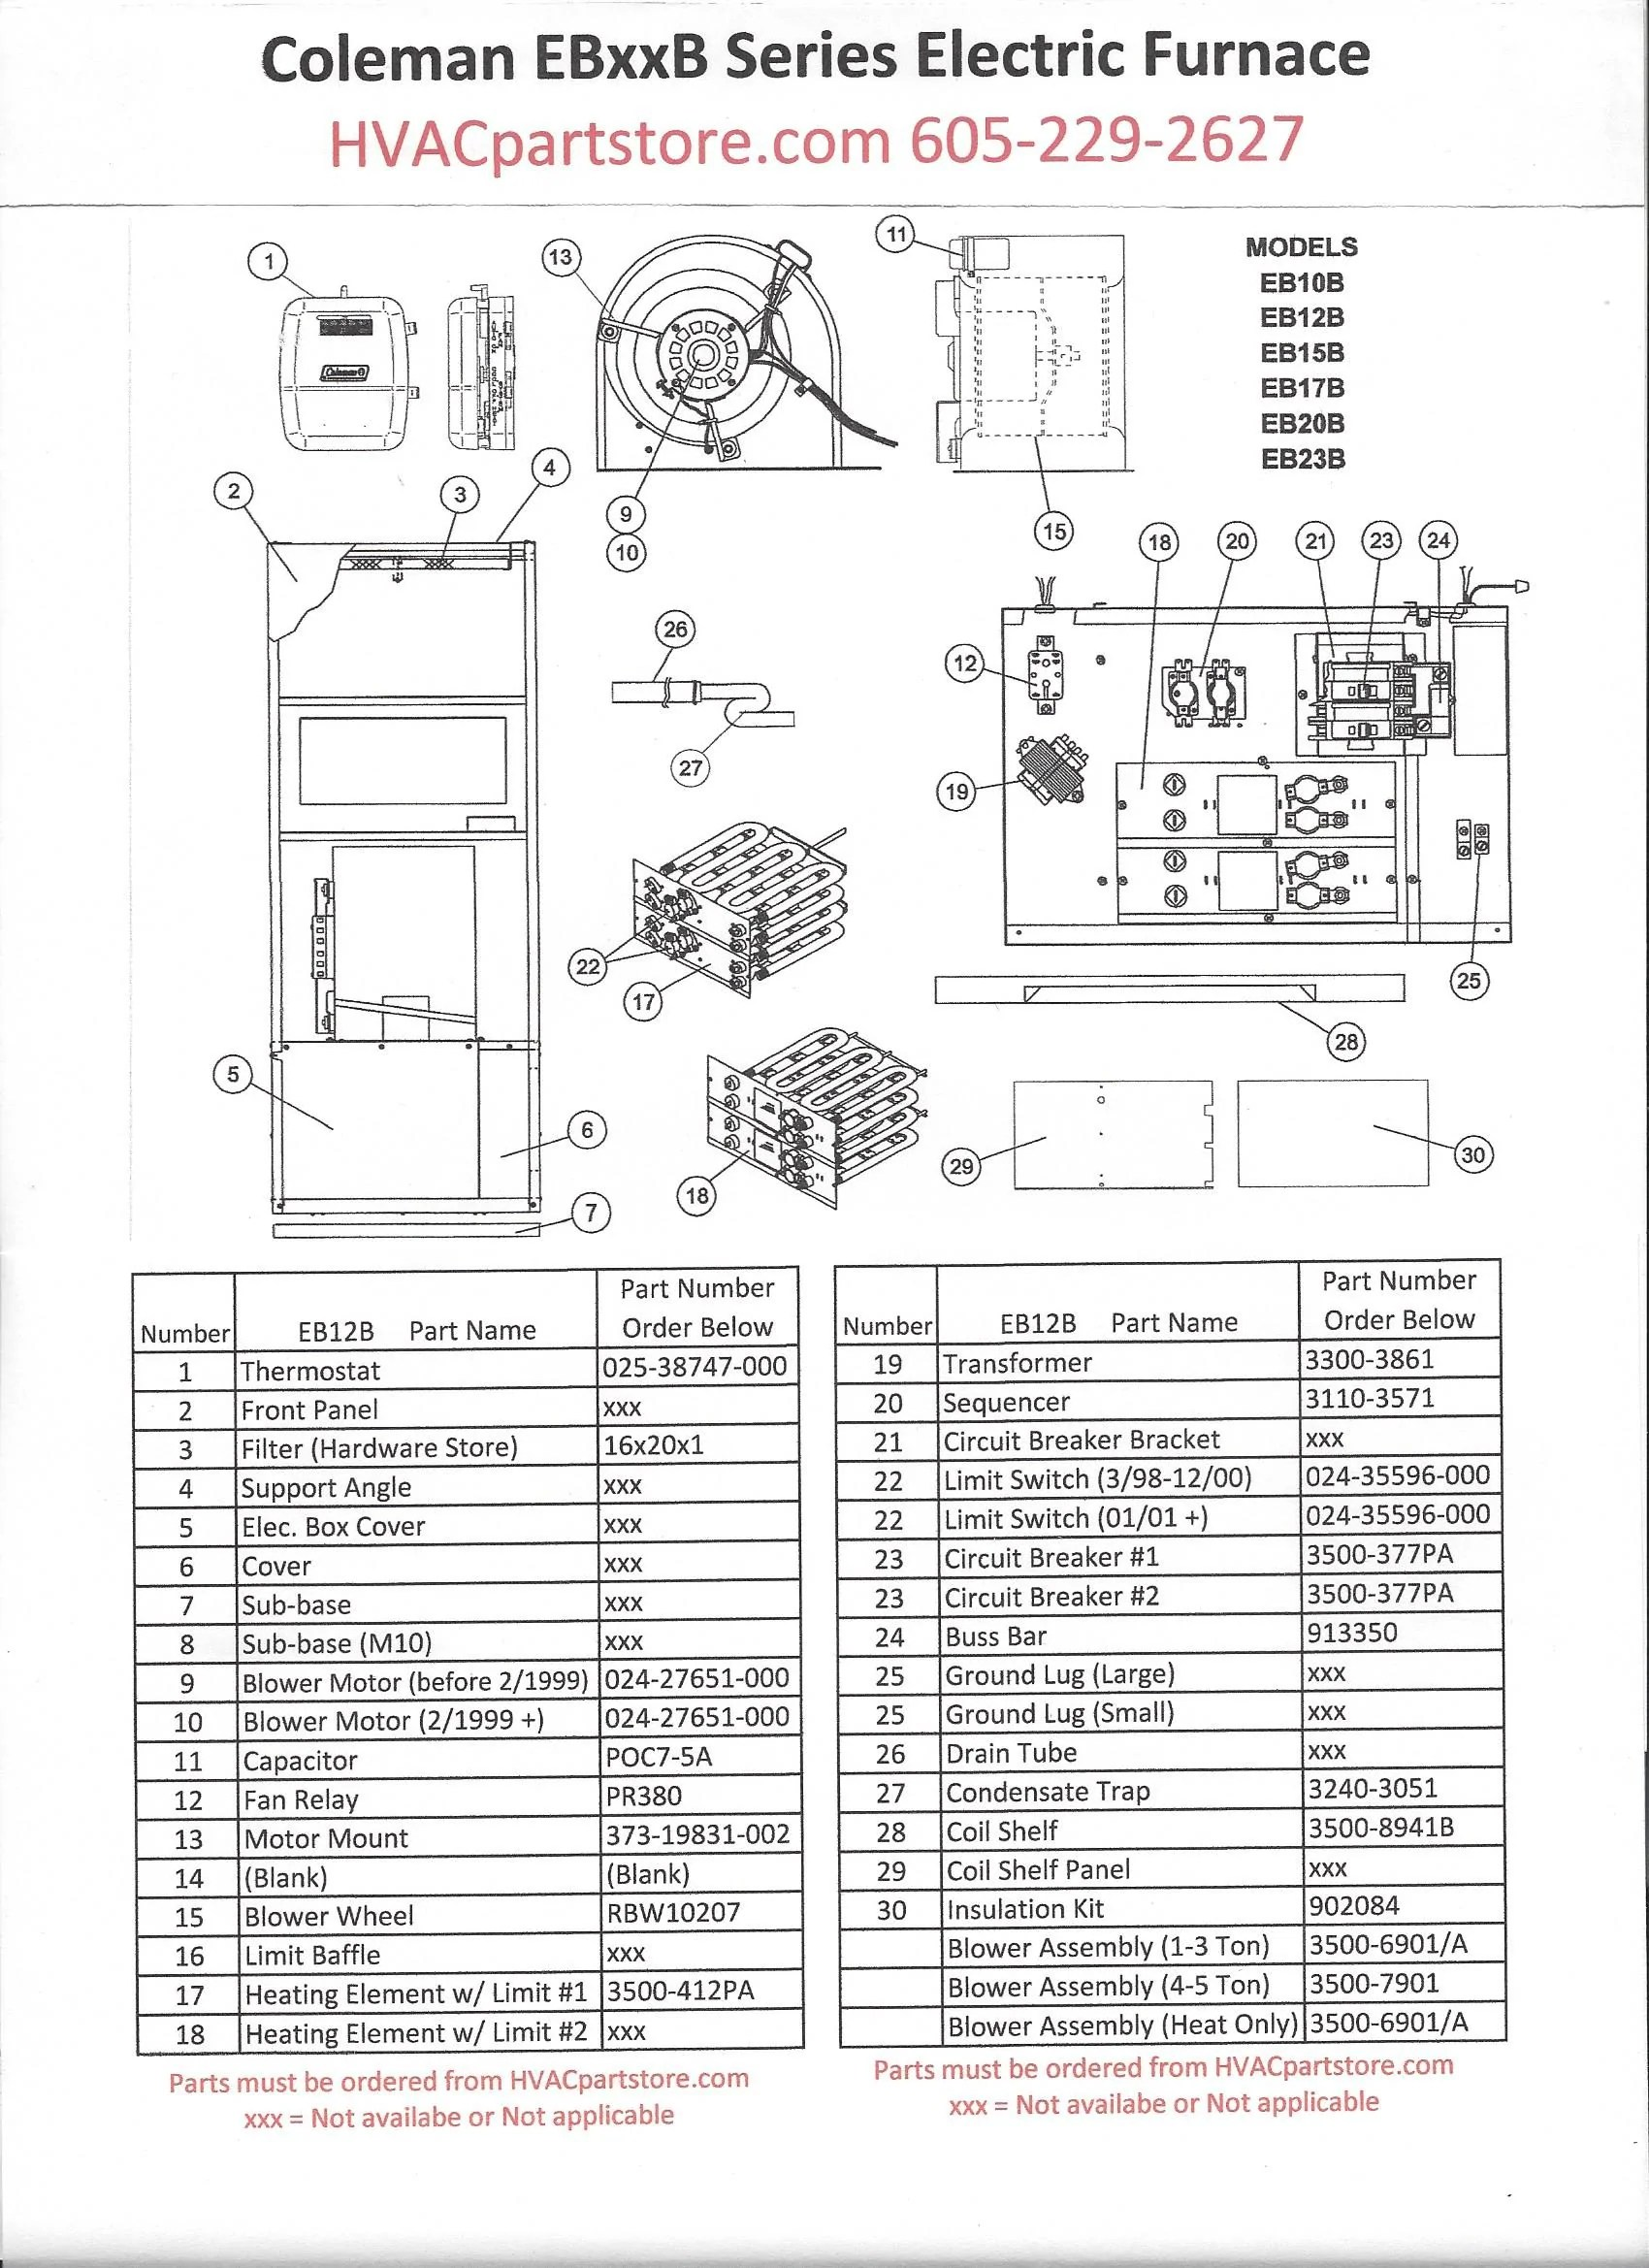 wiring diagram for nordyne electric furnace parts of a sailing ship relay pr380 schematic data schema library click here to view manual with diagrams